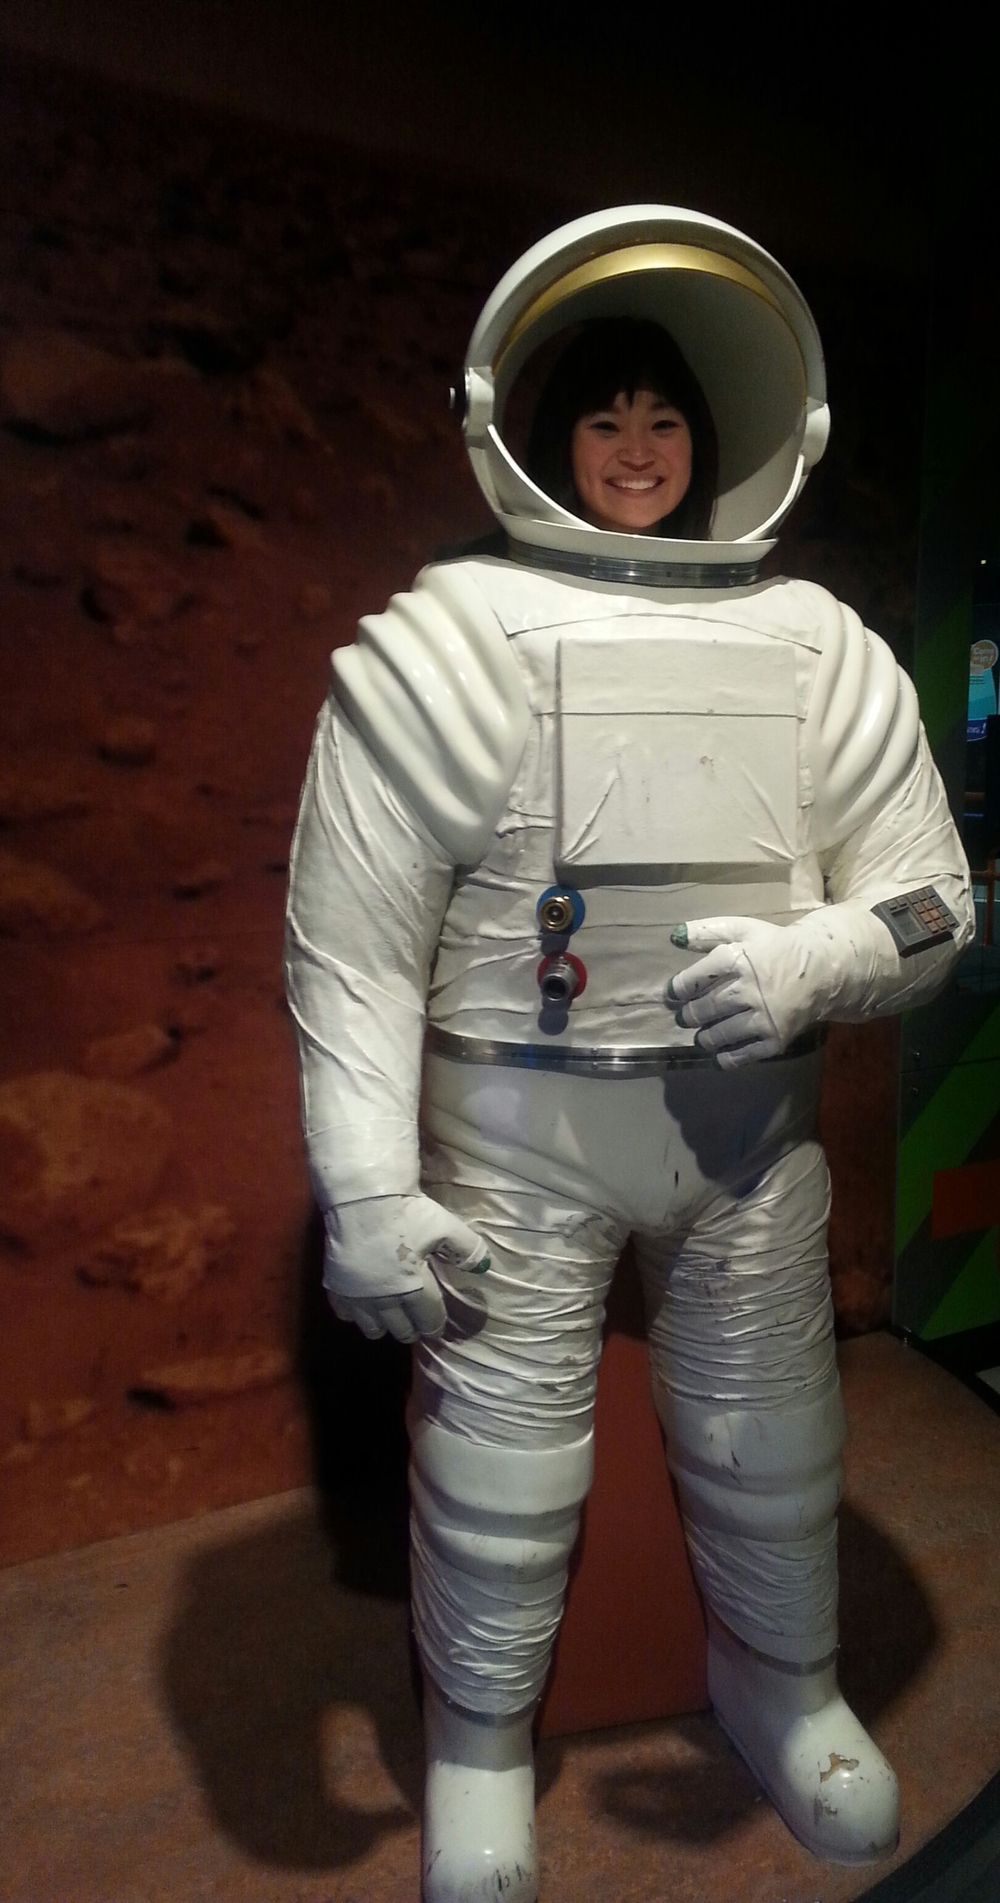 Picture taken at the Telus World of Science in Edmonton, AB.  Not sure if I could be an astronaut!